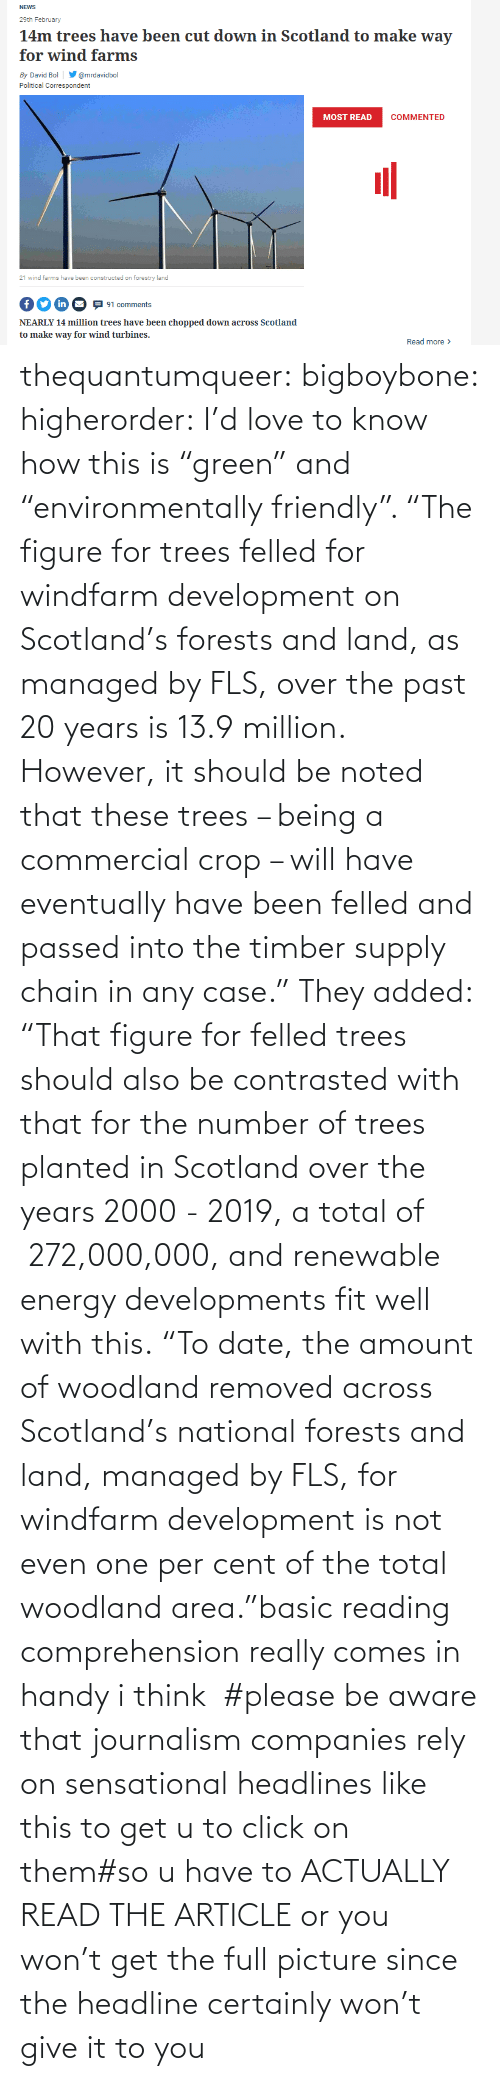 "Tagged: thequantumqueer: bigboybone:  higherorder: I'd love to know how this is ""green"" and ""environmentally friendly"".  ""The figure for trees felled for windfarm development on Scotland's forests and land, as managed by FLS, over the past 20 years is 13.9 million. However, it should be noted that these trees – being a commercial crop – will have eventually have been felled and passed into the timber supply chain in any case."" They added: ""That figure for felled trees should also be contrasted with that for the number of trees planted in Scotland over the years 2000 - 2019, a total of  272,000,000, and renewable energy developments fit well with this. ""To date, the amount of woodland removed across Scotland's national forests and land, managed by FLS, for windfarm development is not even one per cent of the total woodland area.""basic reading comprehension really comes in handy i think   #please be aware that journalism companies rely on sensational headlines like this to get u to click on them#so u have to ACTUALLY READ THE ARTICLE or you won't get the full picture since the headline certainly won't give it to you"